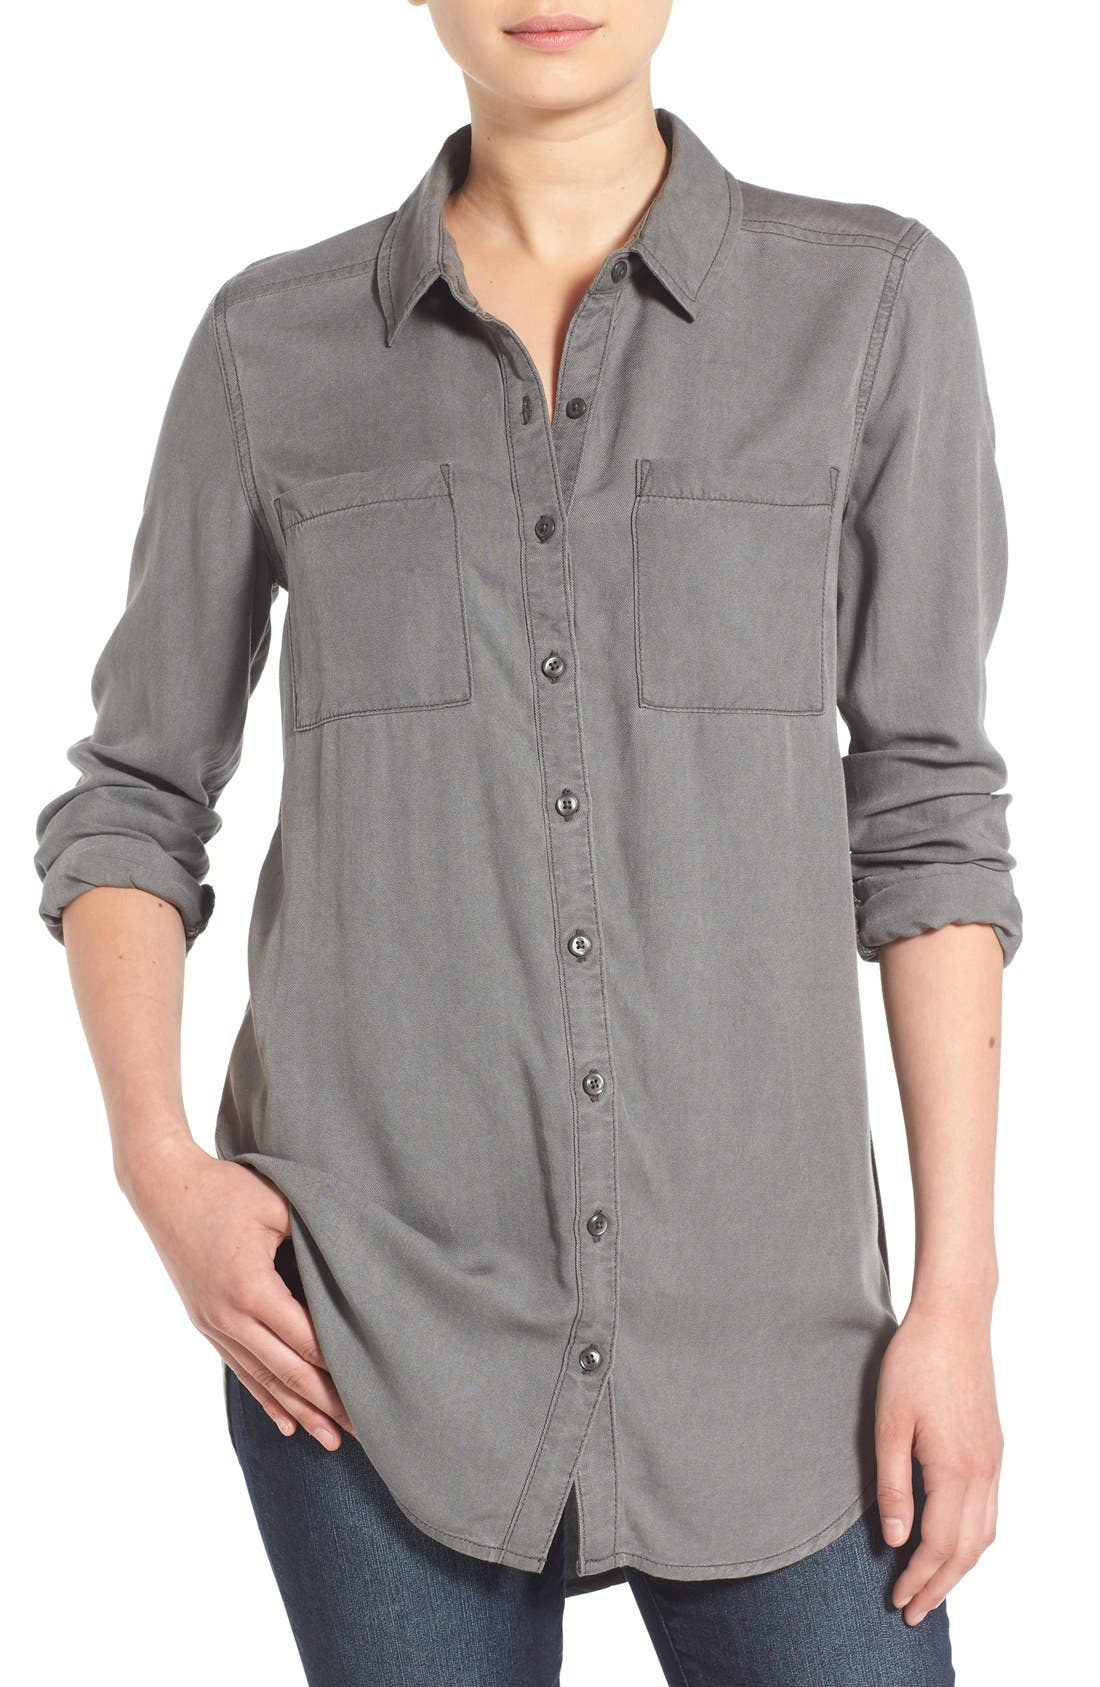 Alternate Image 1 Selected - BP. Woven Twill Tunic